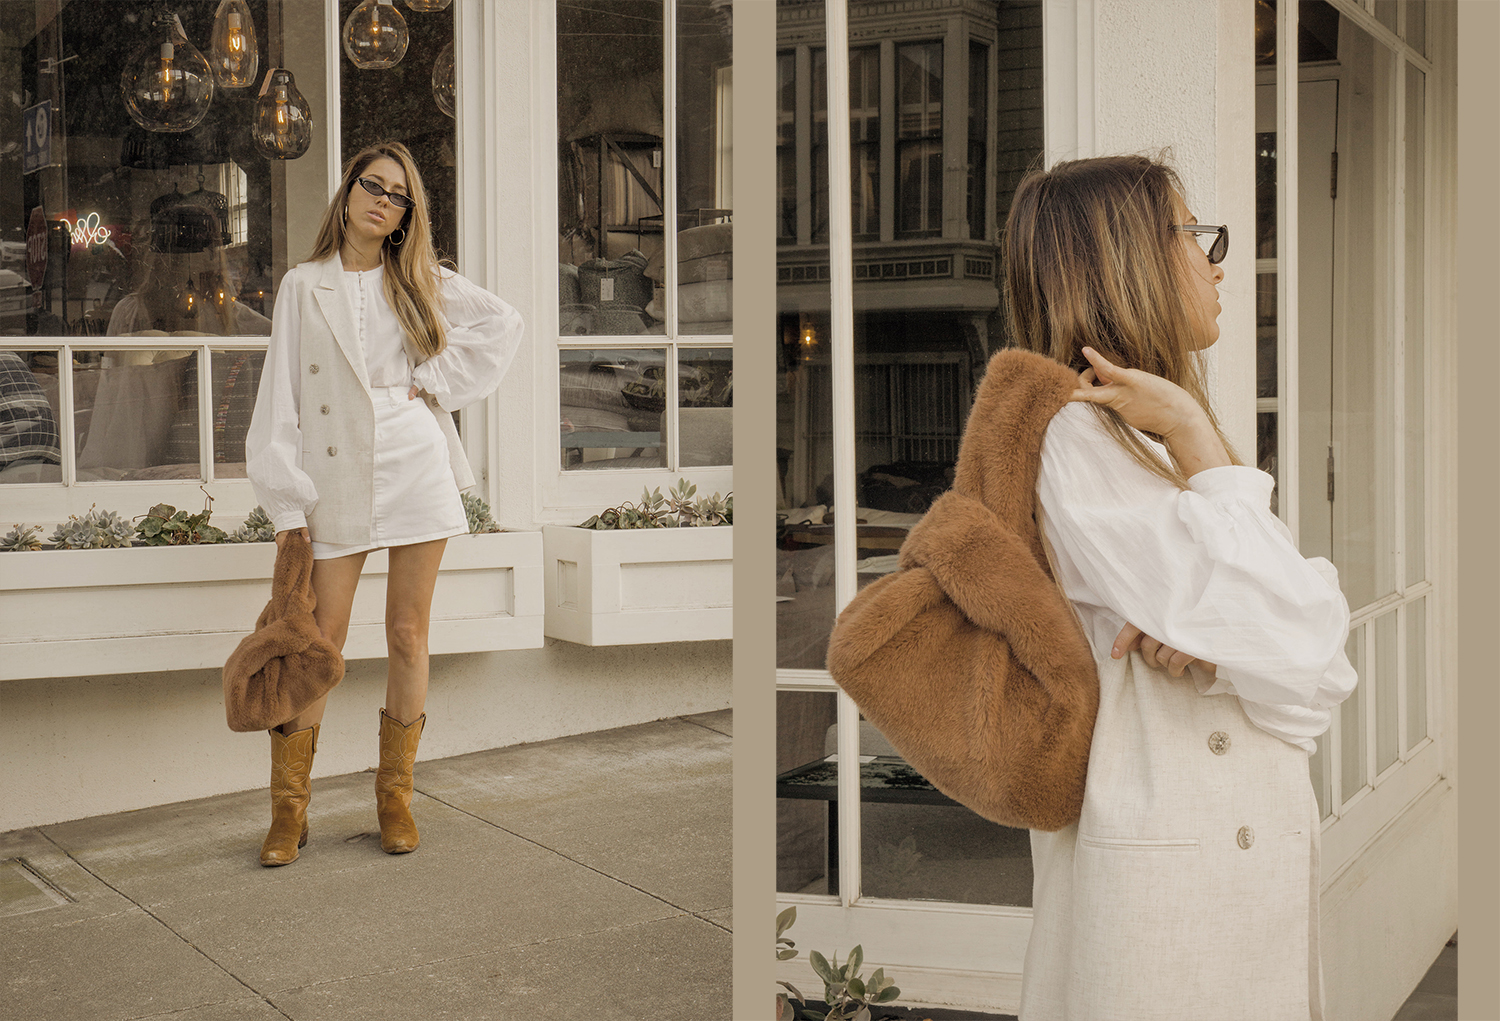 total_all_white_outfit_look_street_style_western_boots_isabel_marant_inspired_fur_bag_vest_denim_skirt_summer_2018_trend_lena_juice_the_white_ocean_01